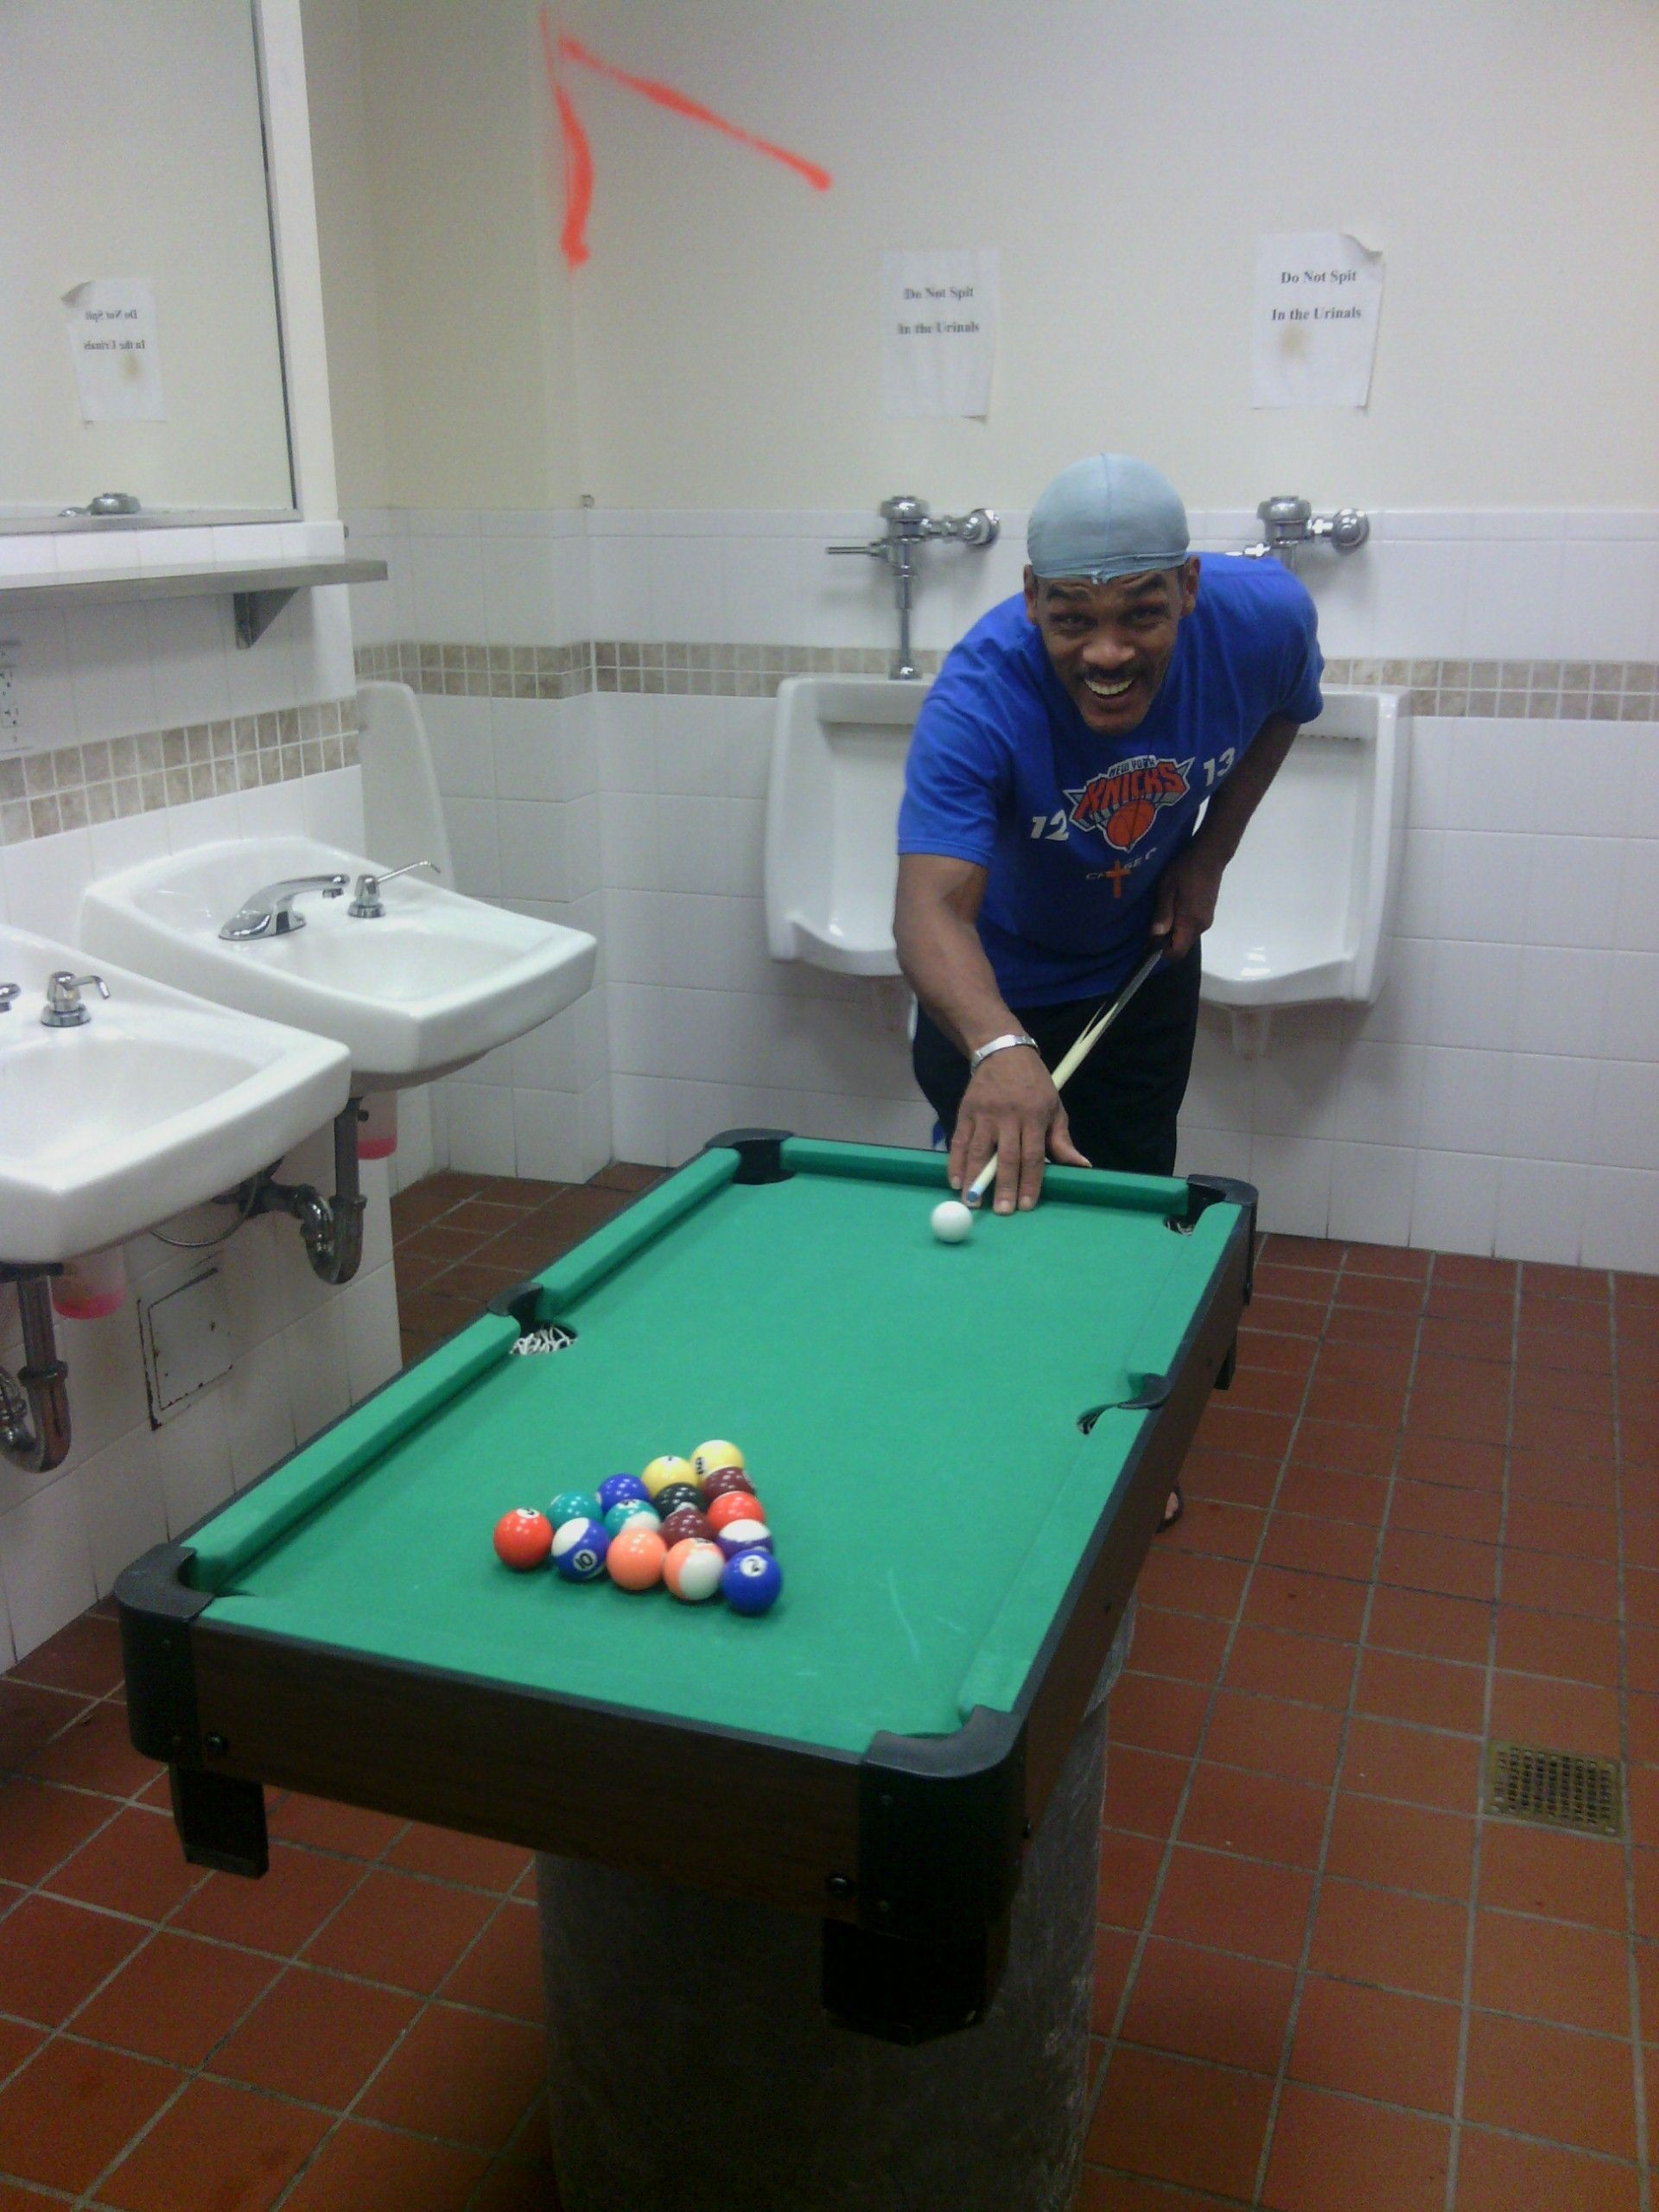 Portable Pool Table Shipped To The NYC Resuce Mission For - Pool table nyc